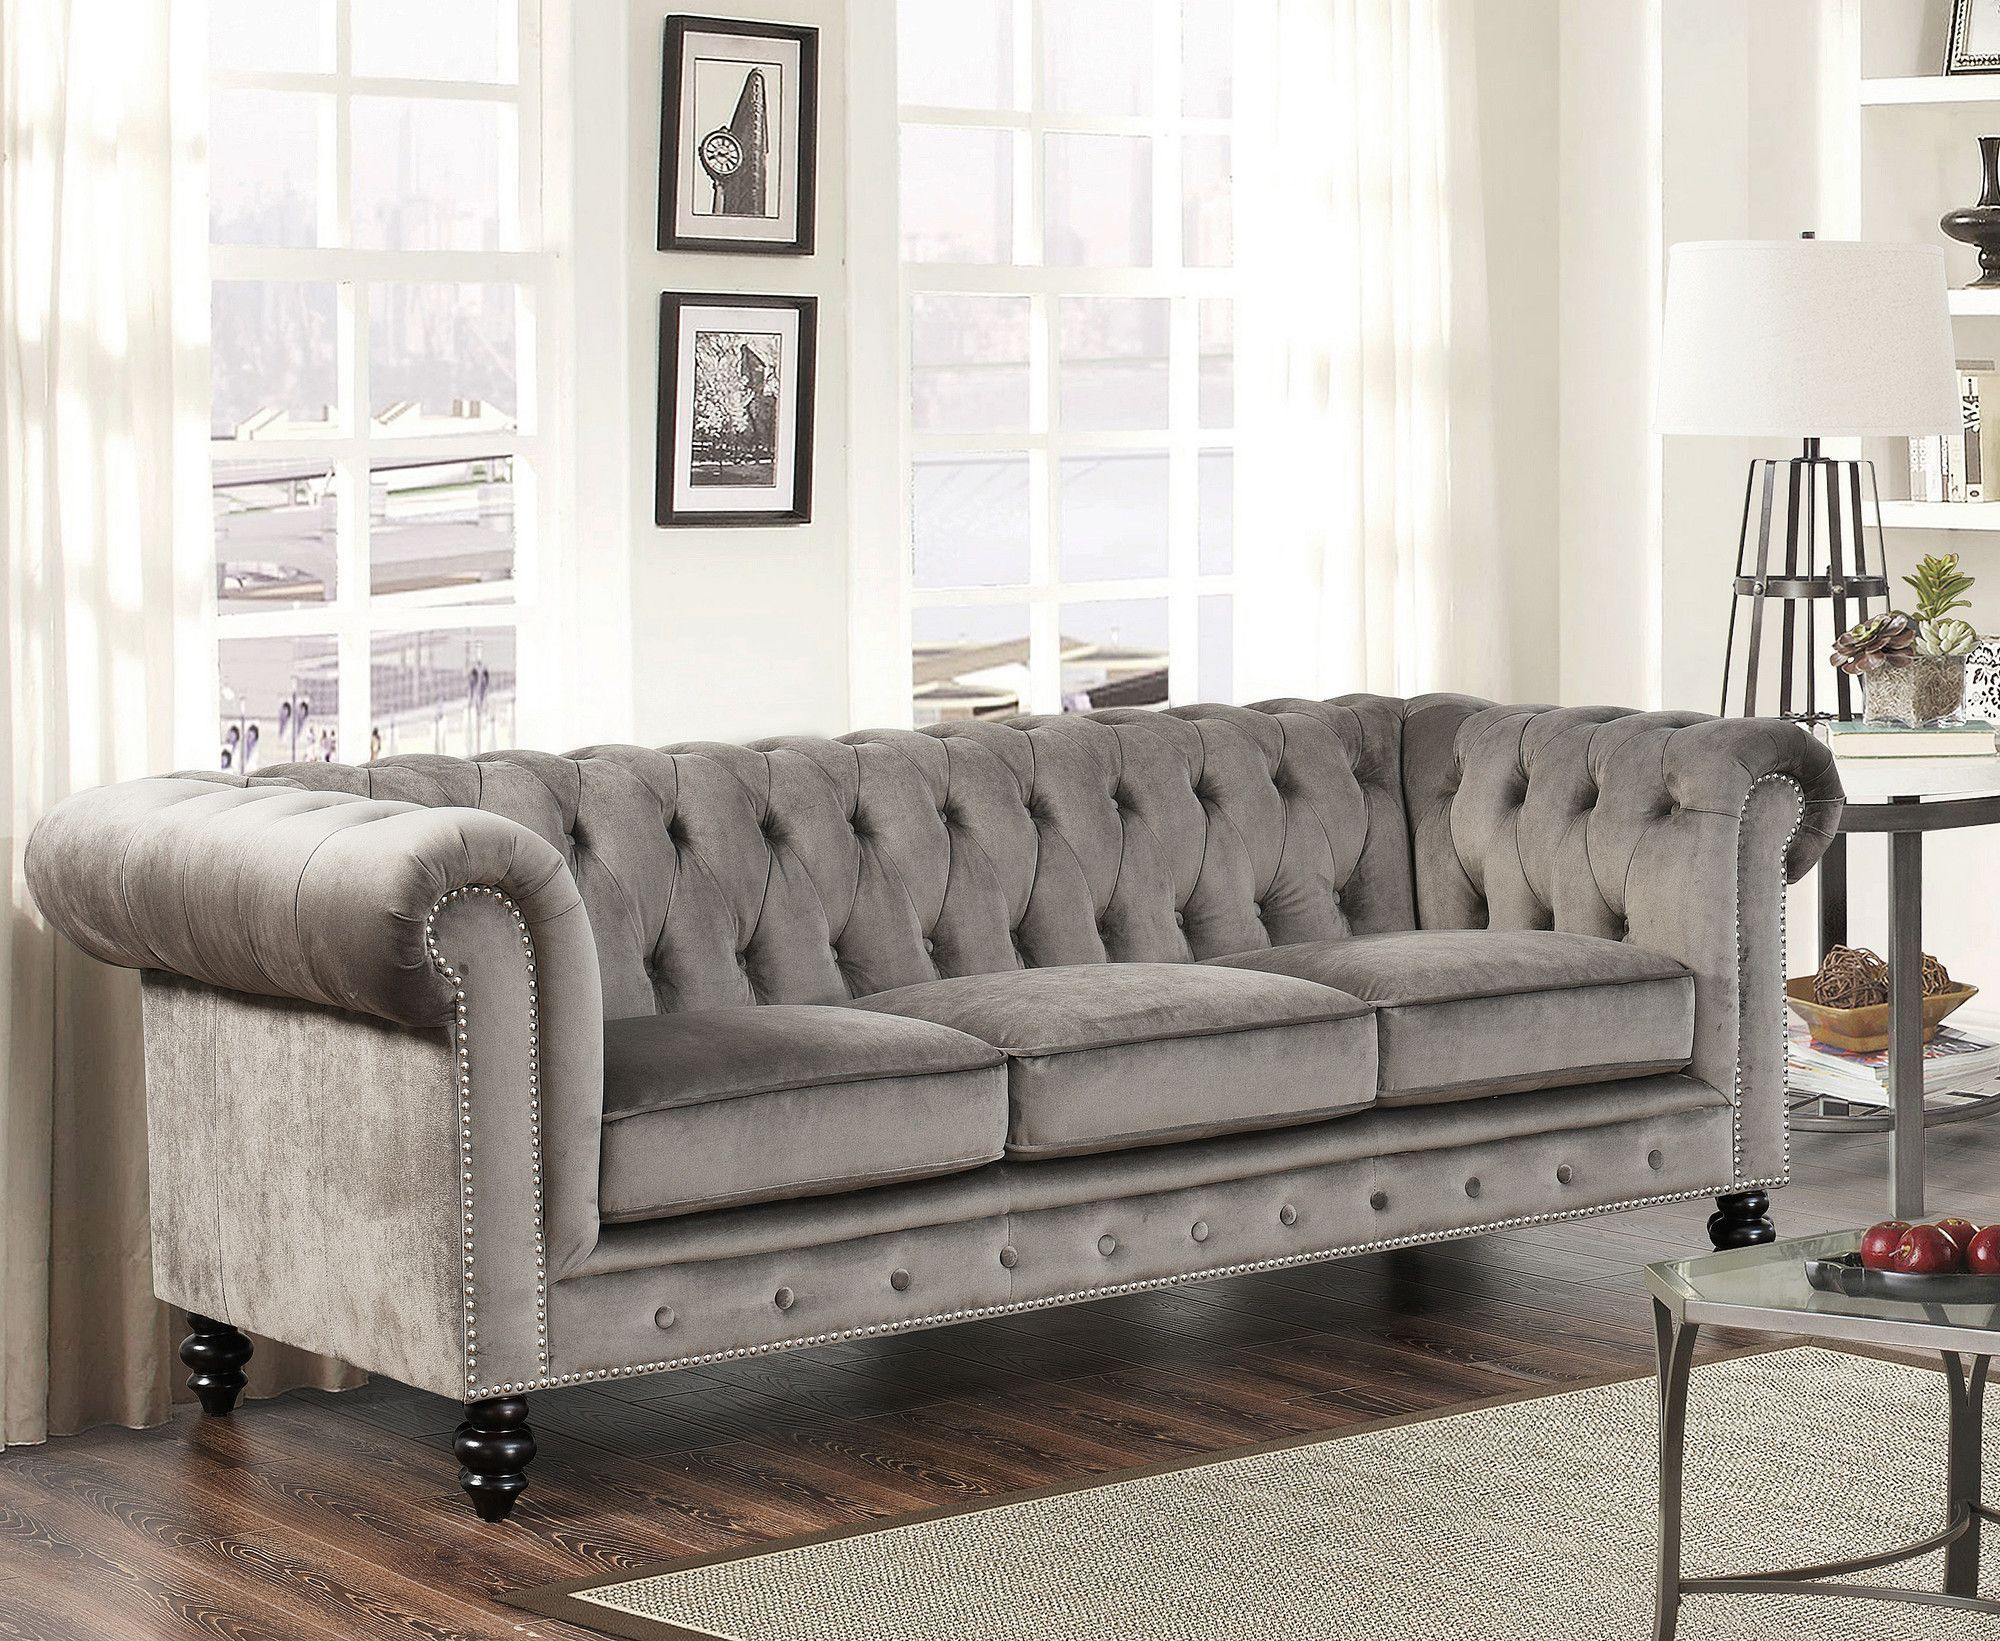 Grand chesterfield sofa mi proxima casa pinterest for Casa sofa sillones